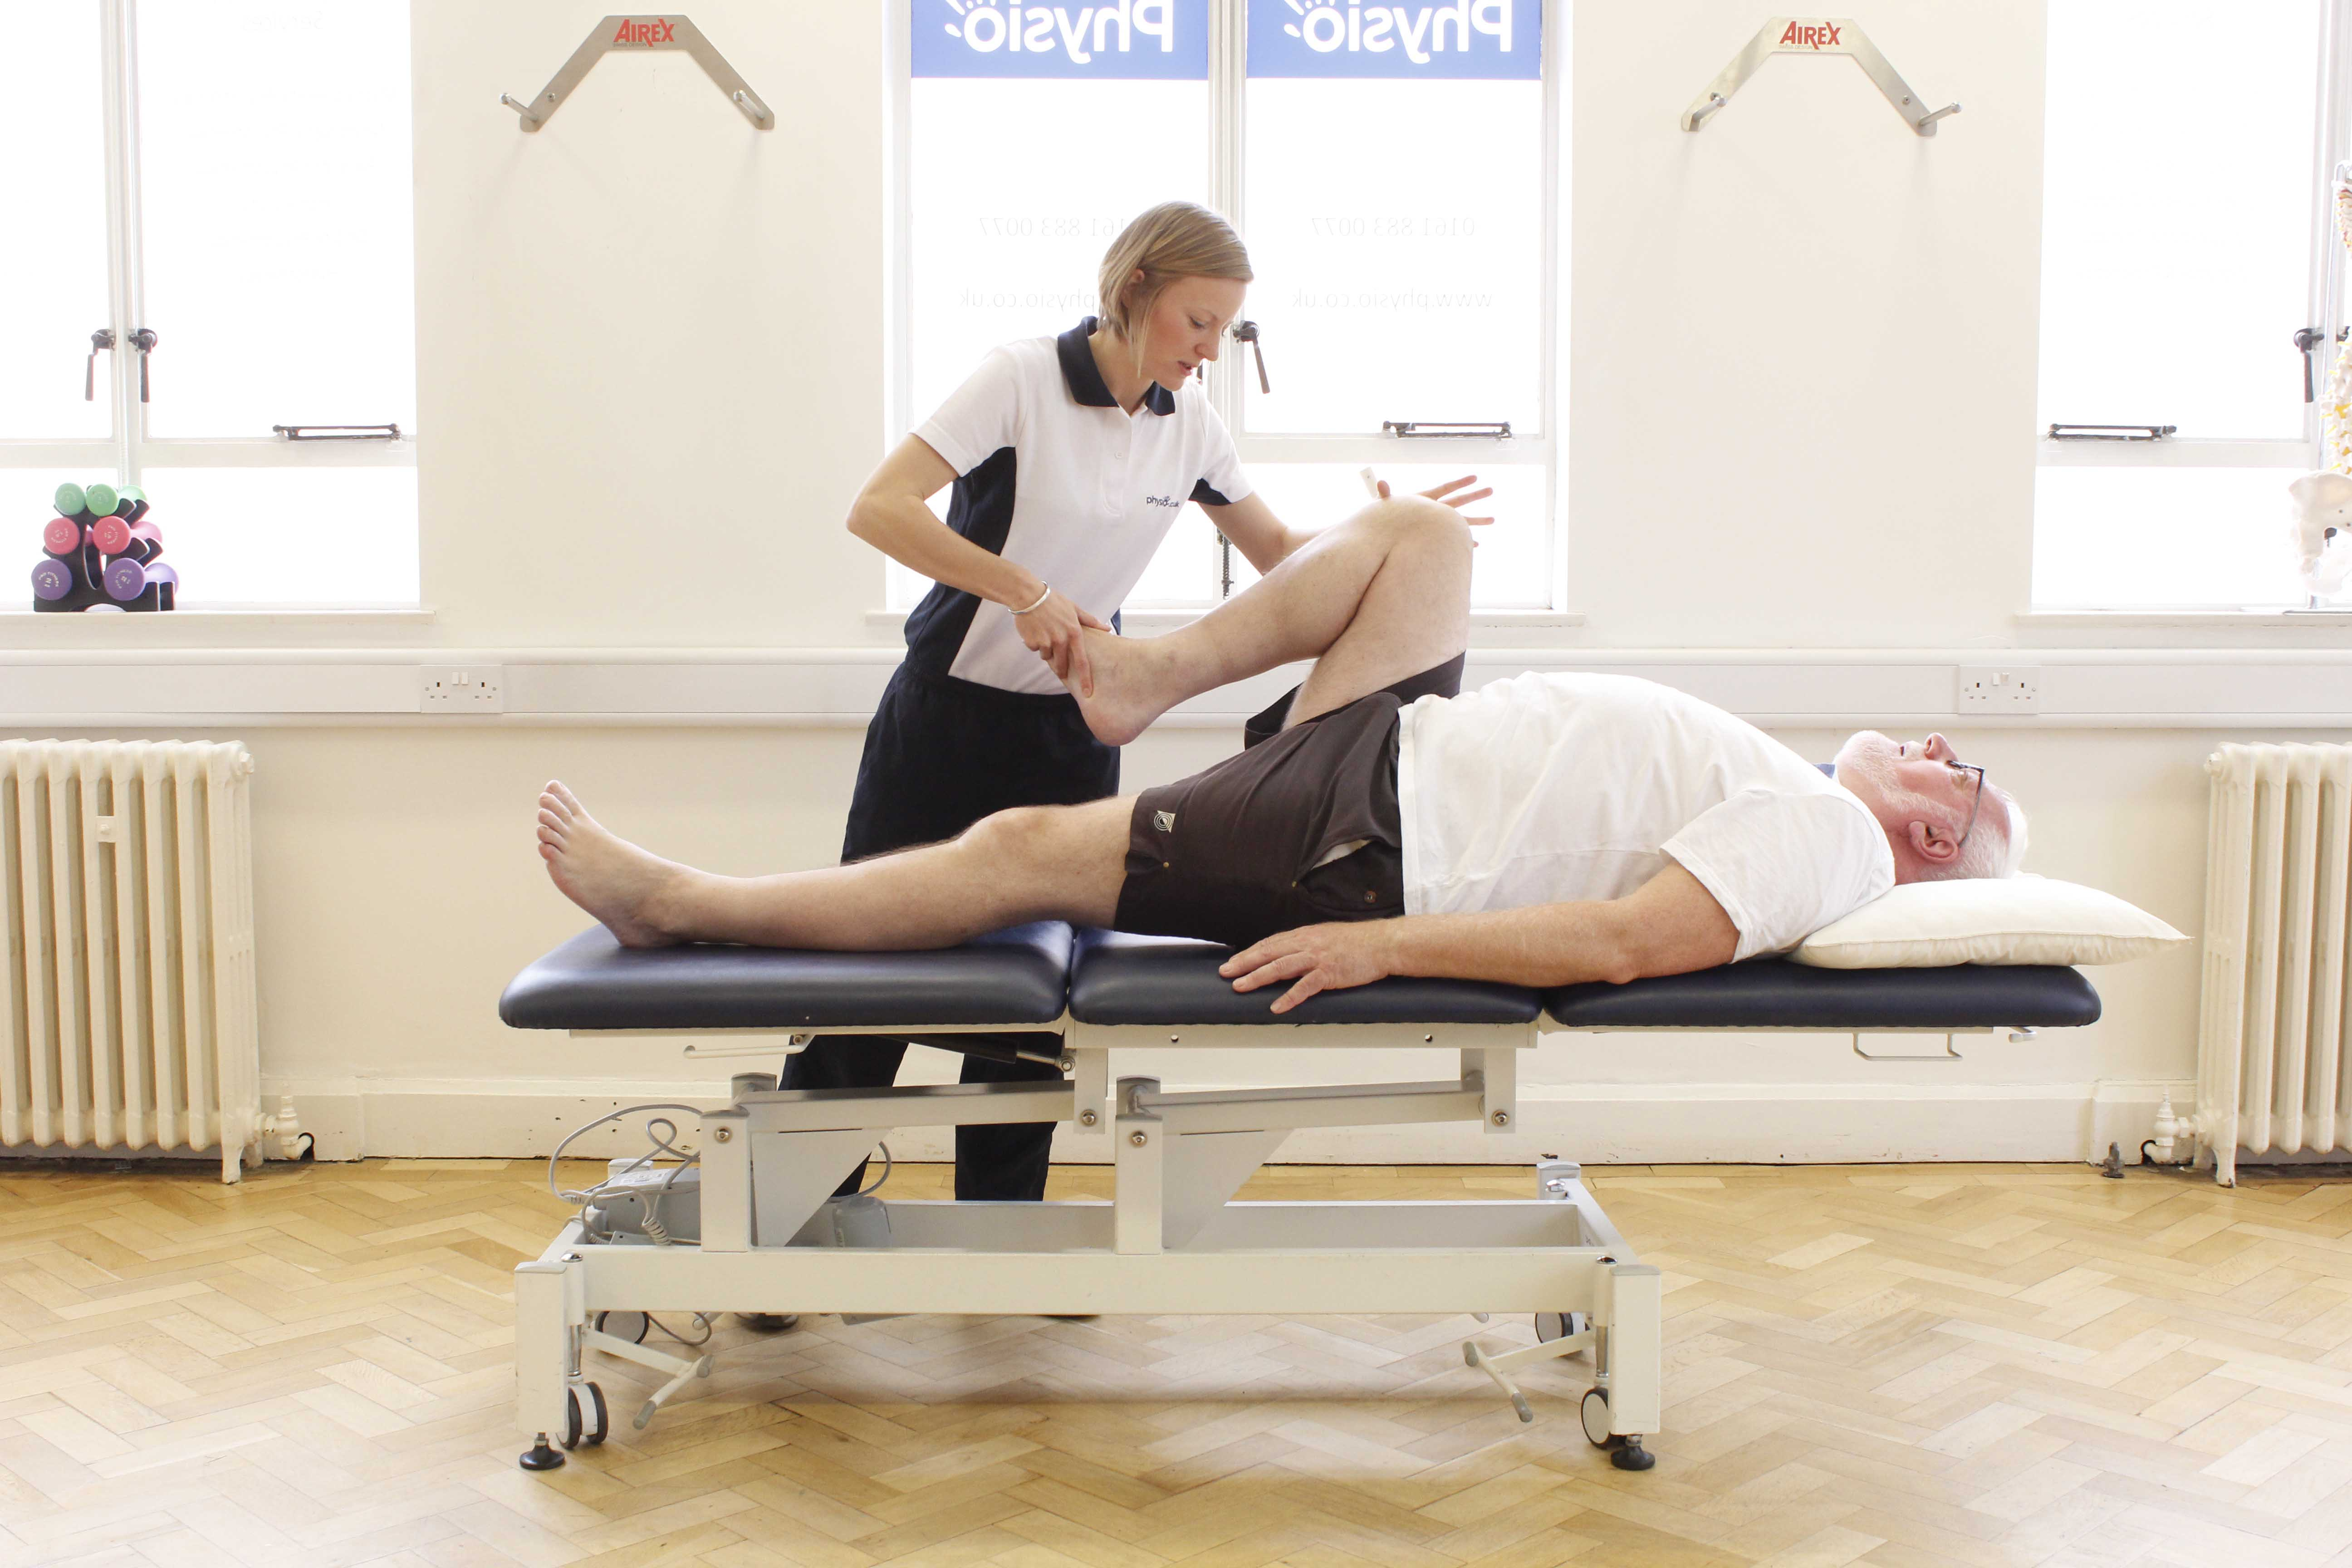 Stretches and mobilisation of the hip and knee joints by experienced musculoskeletal physiotherapist